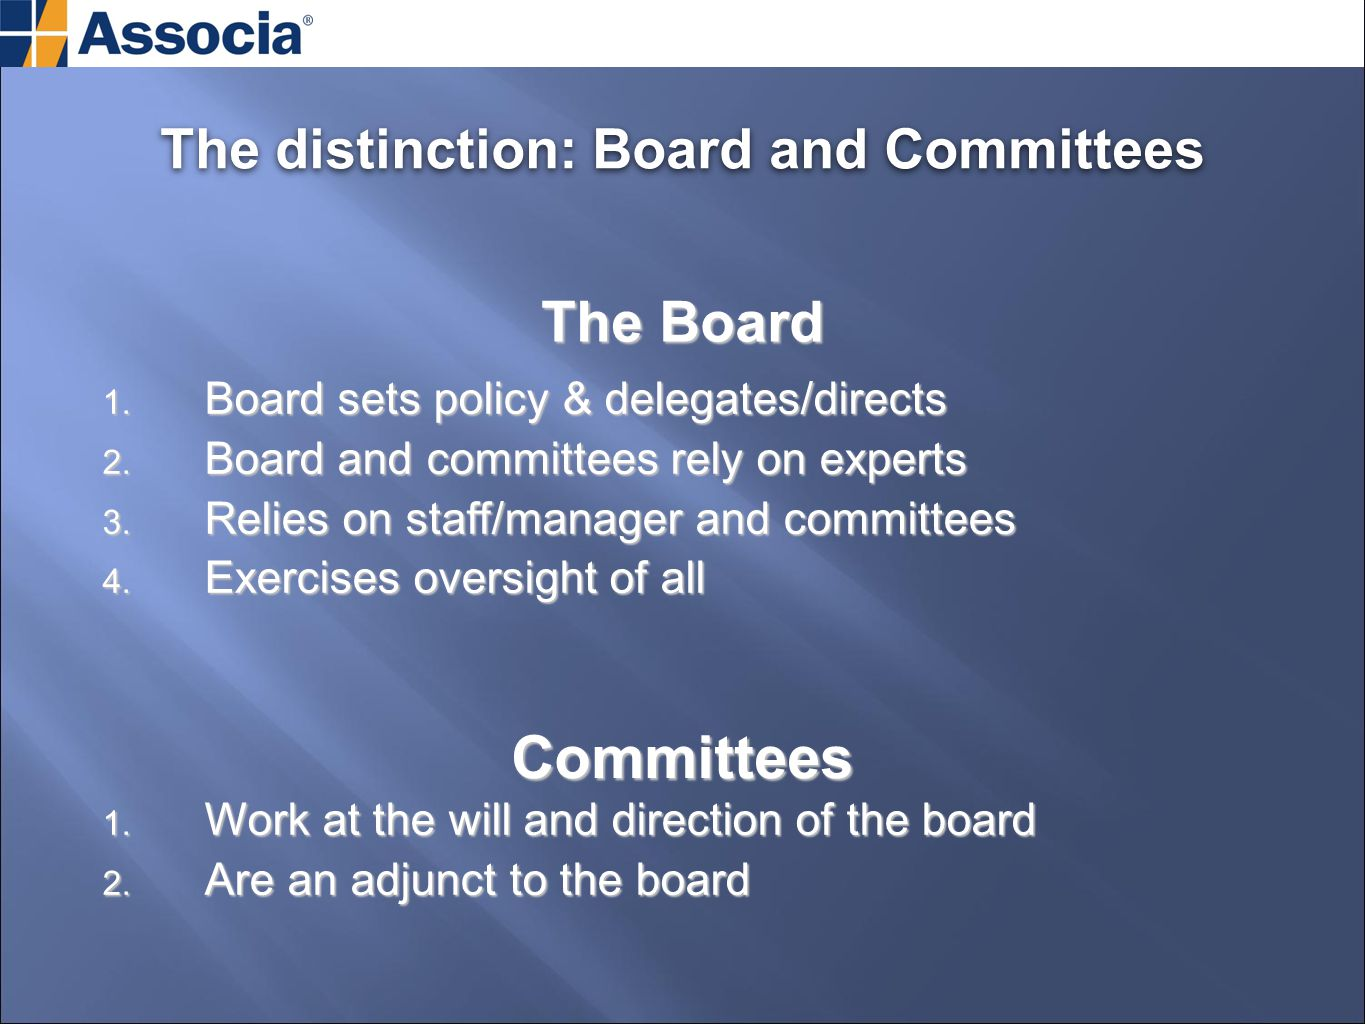 The Board Committees 1. Work at the will and direction of the board 2.